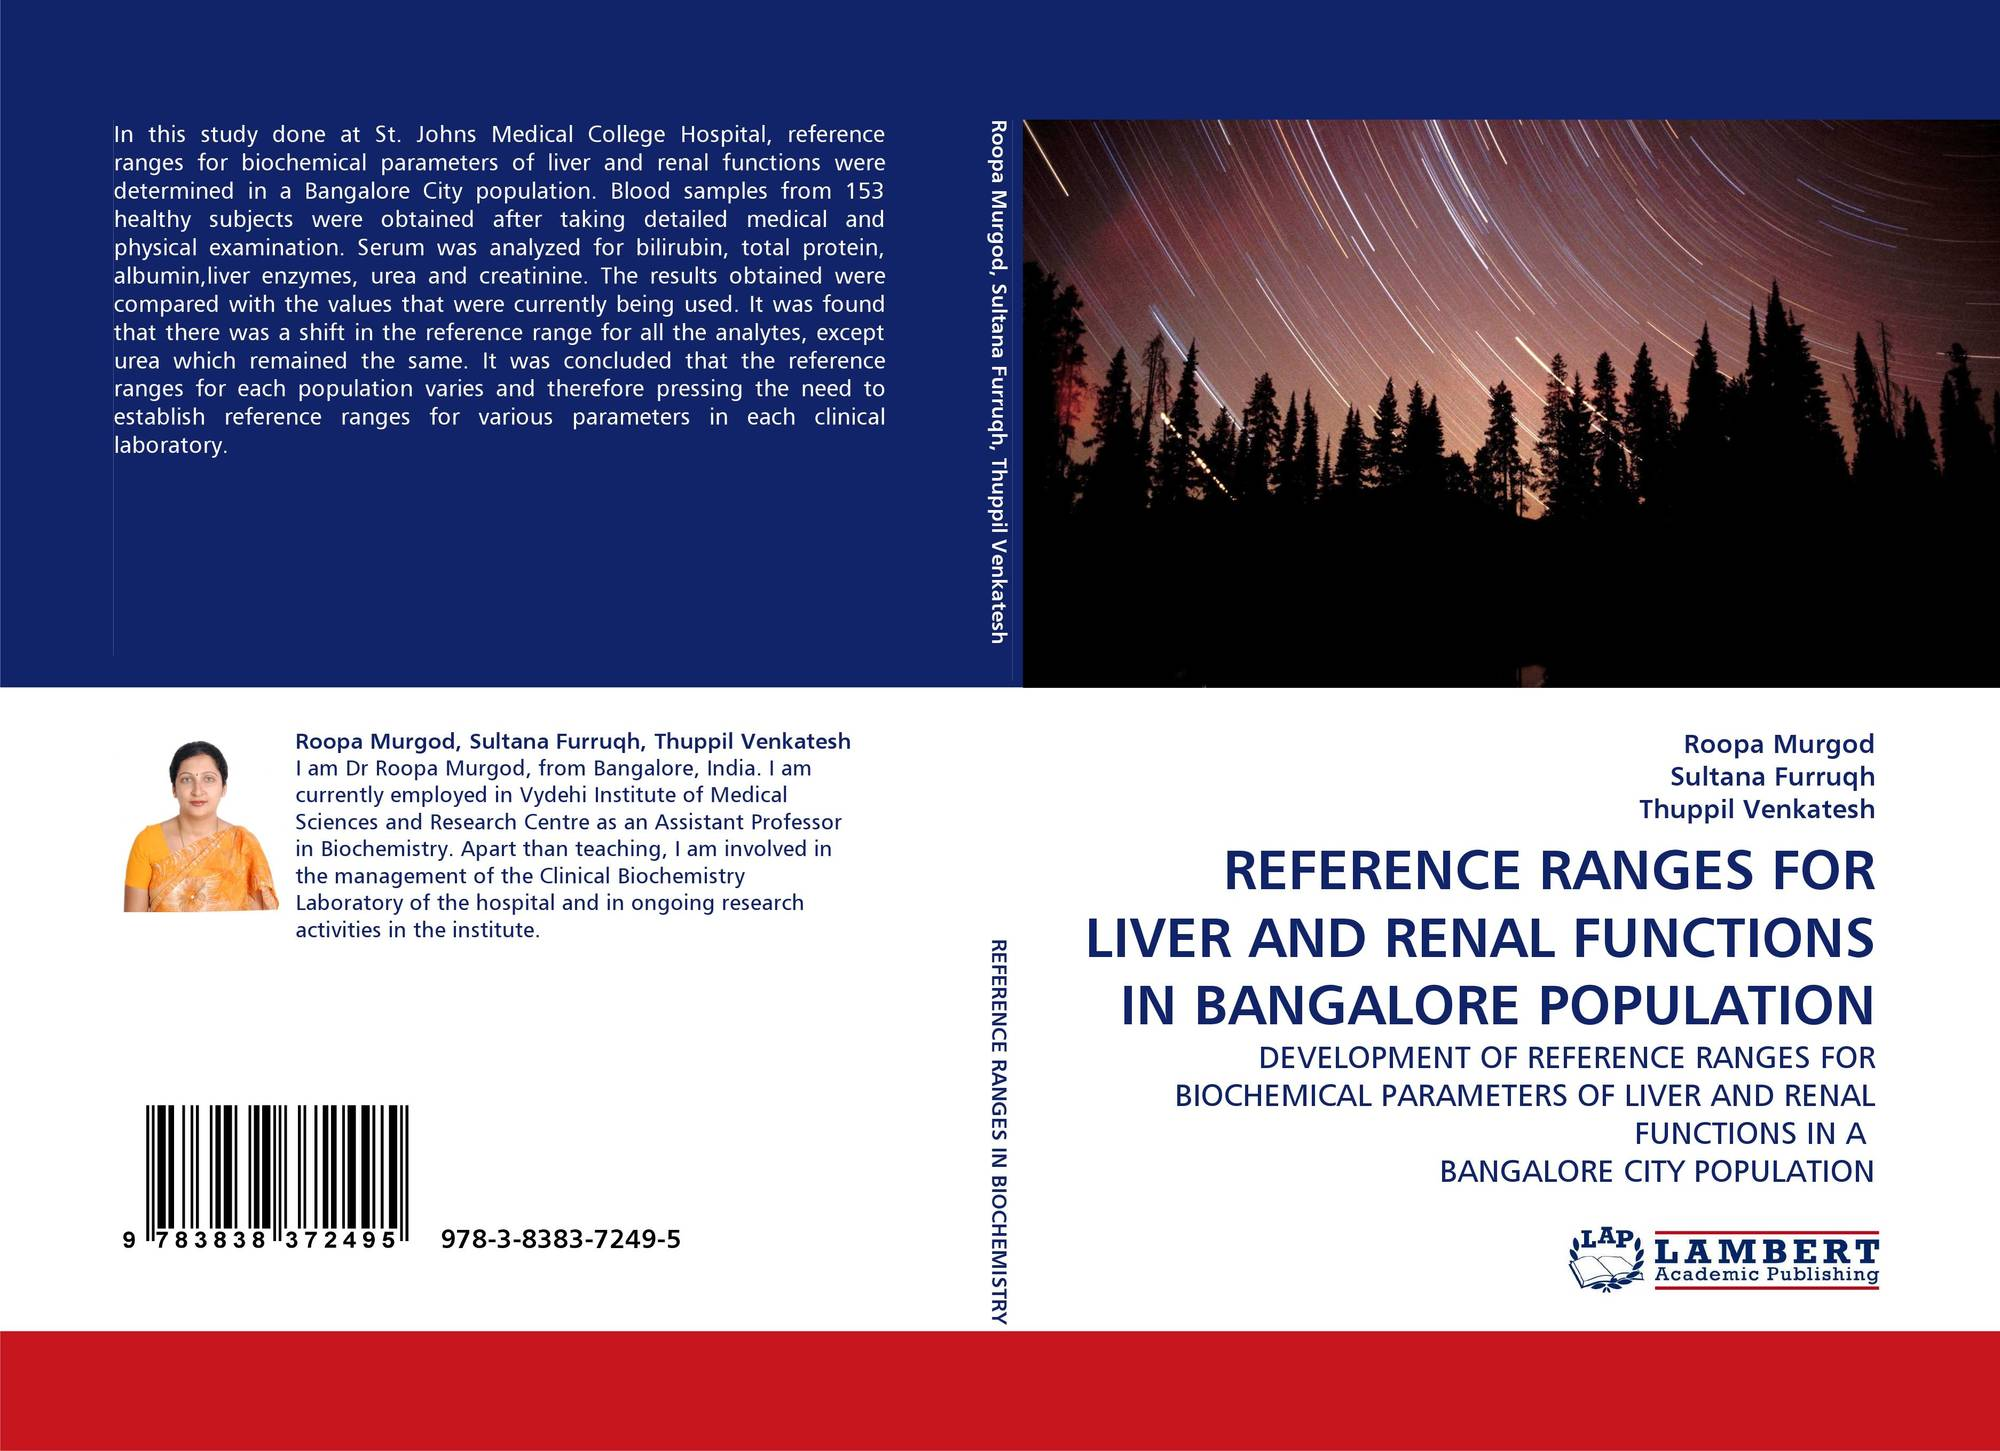 Reference Ranges For Liver And Renal Functions In Bangalore